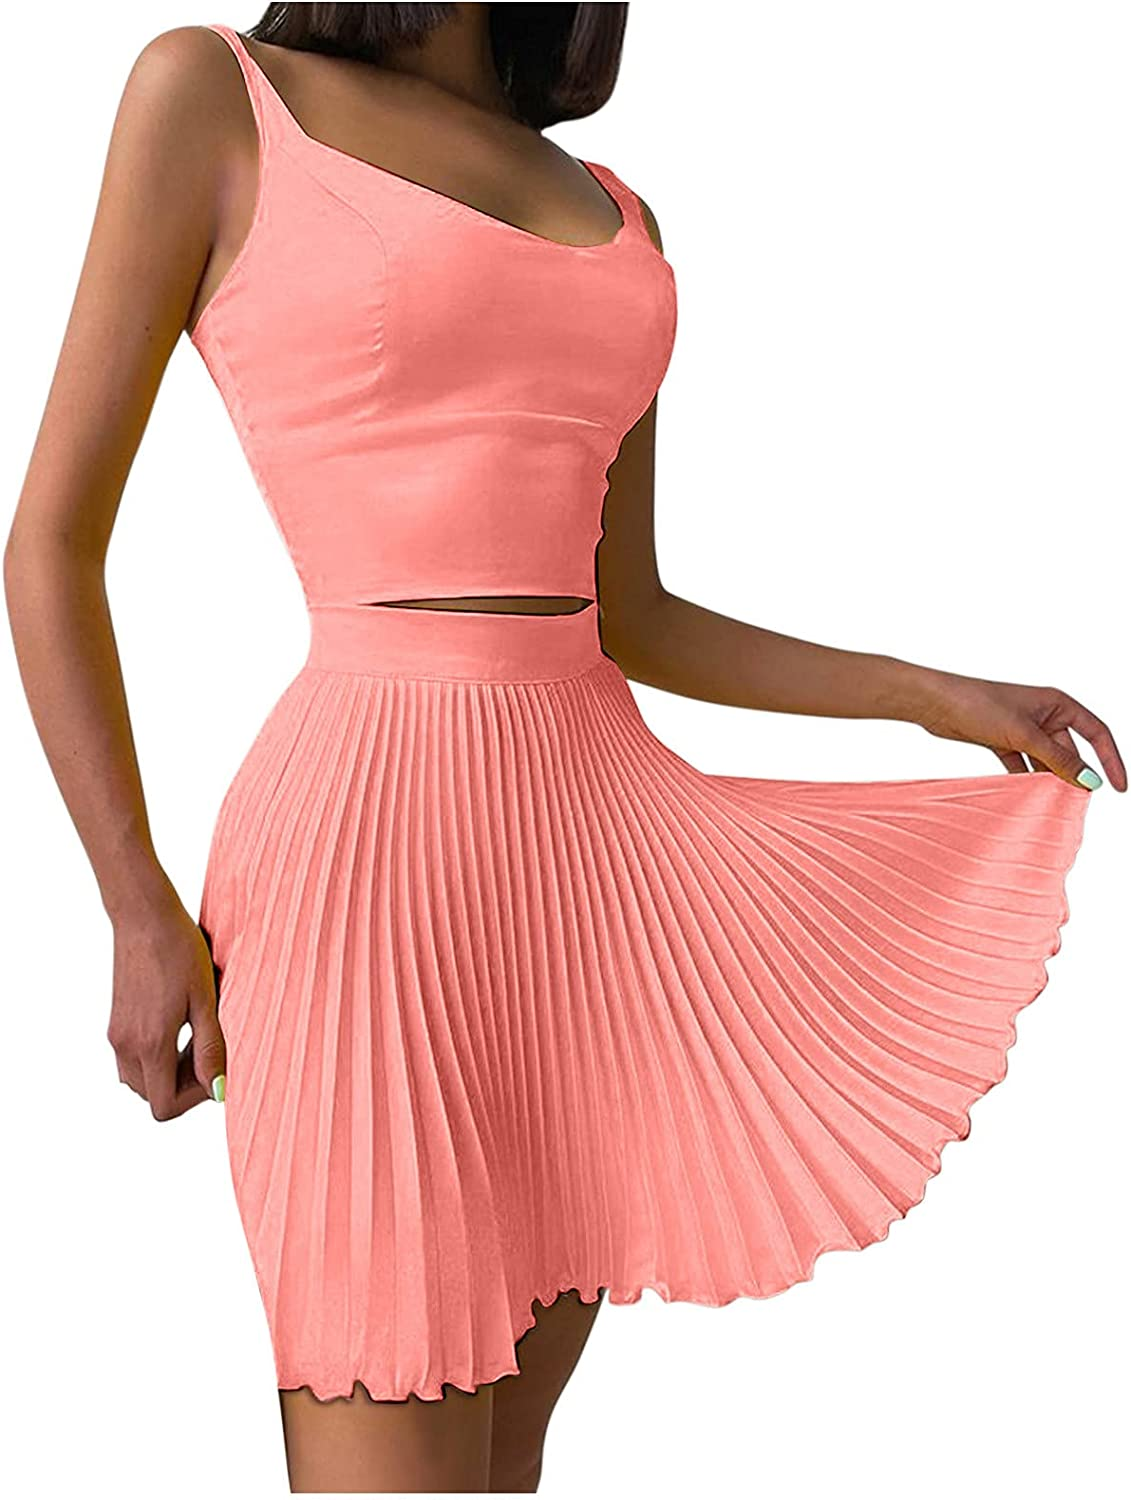 A2A 2 Piece Outfits for Women Sexy Plain Color Sleeveless Tank Crop Top Pleated Mini Skirt Set Knitted Mini Dress Suit